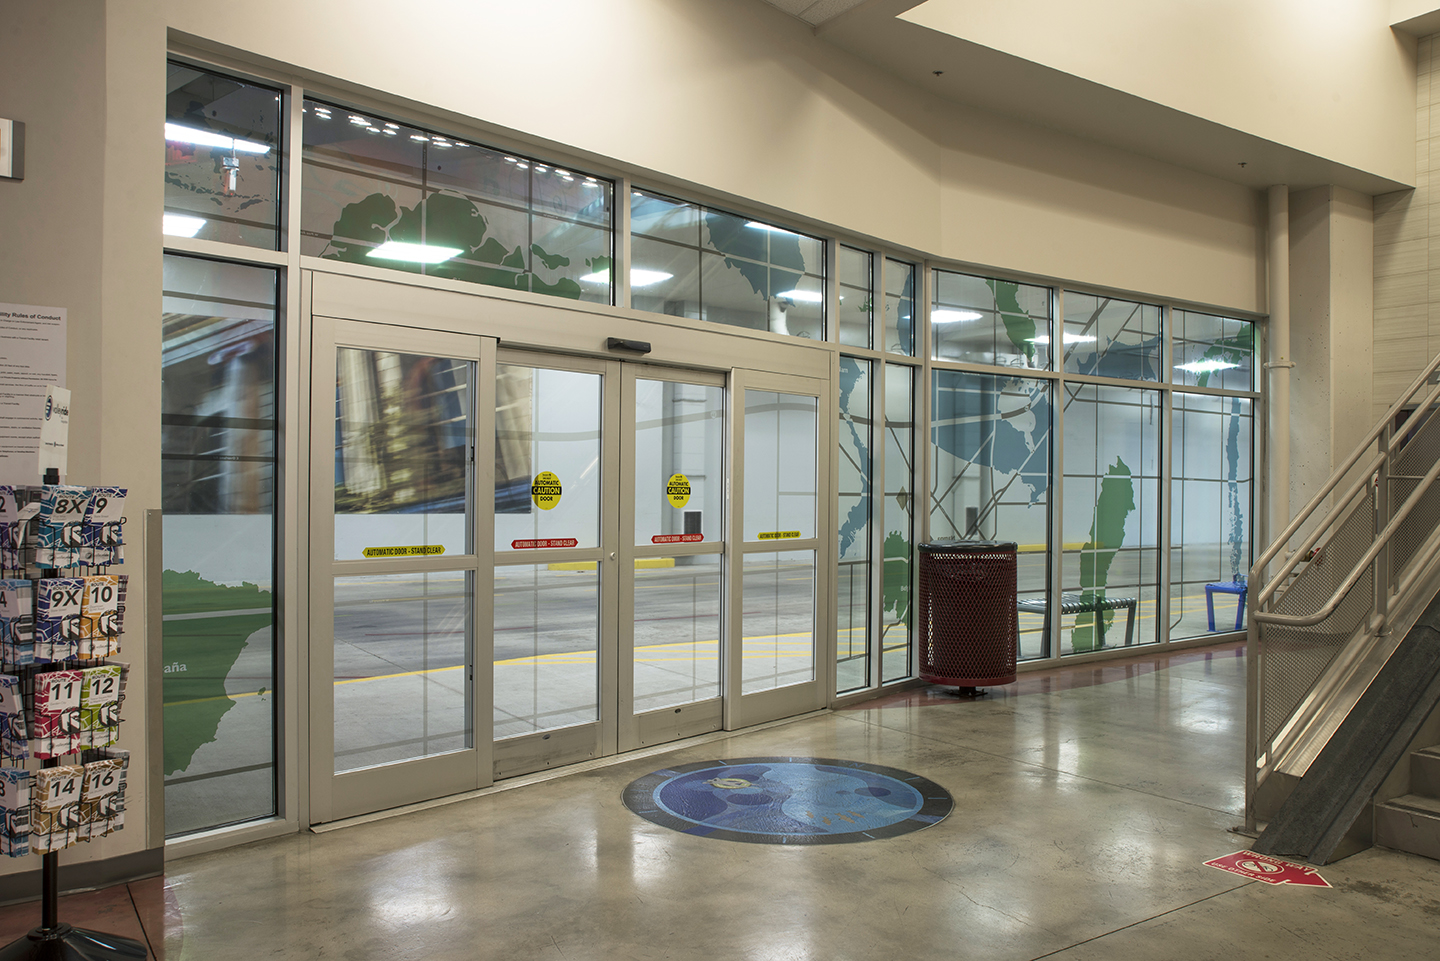 """The Commute: Idaho: Imports & Exports"" vinyl on windows, Valley Regional Transit Station, Boise, Idaho, 2018"